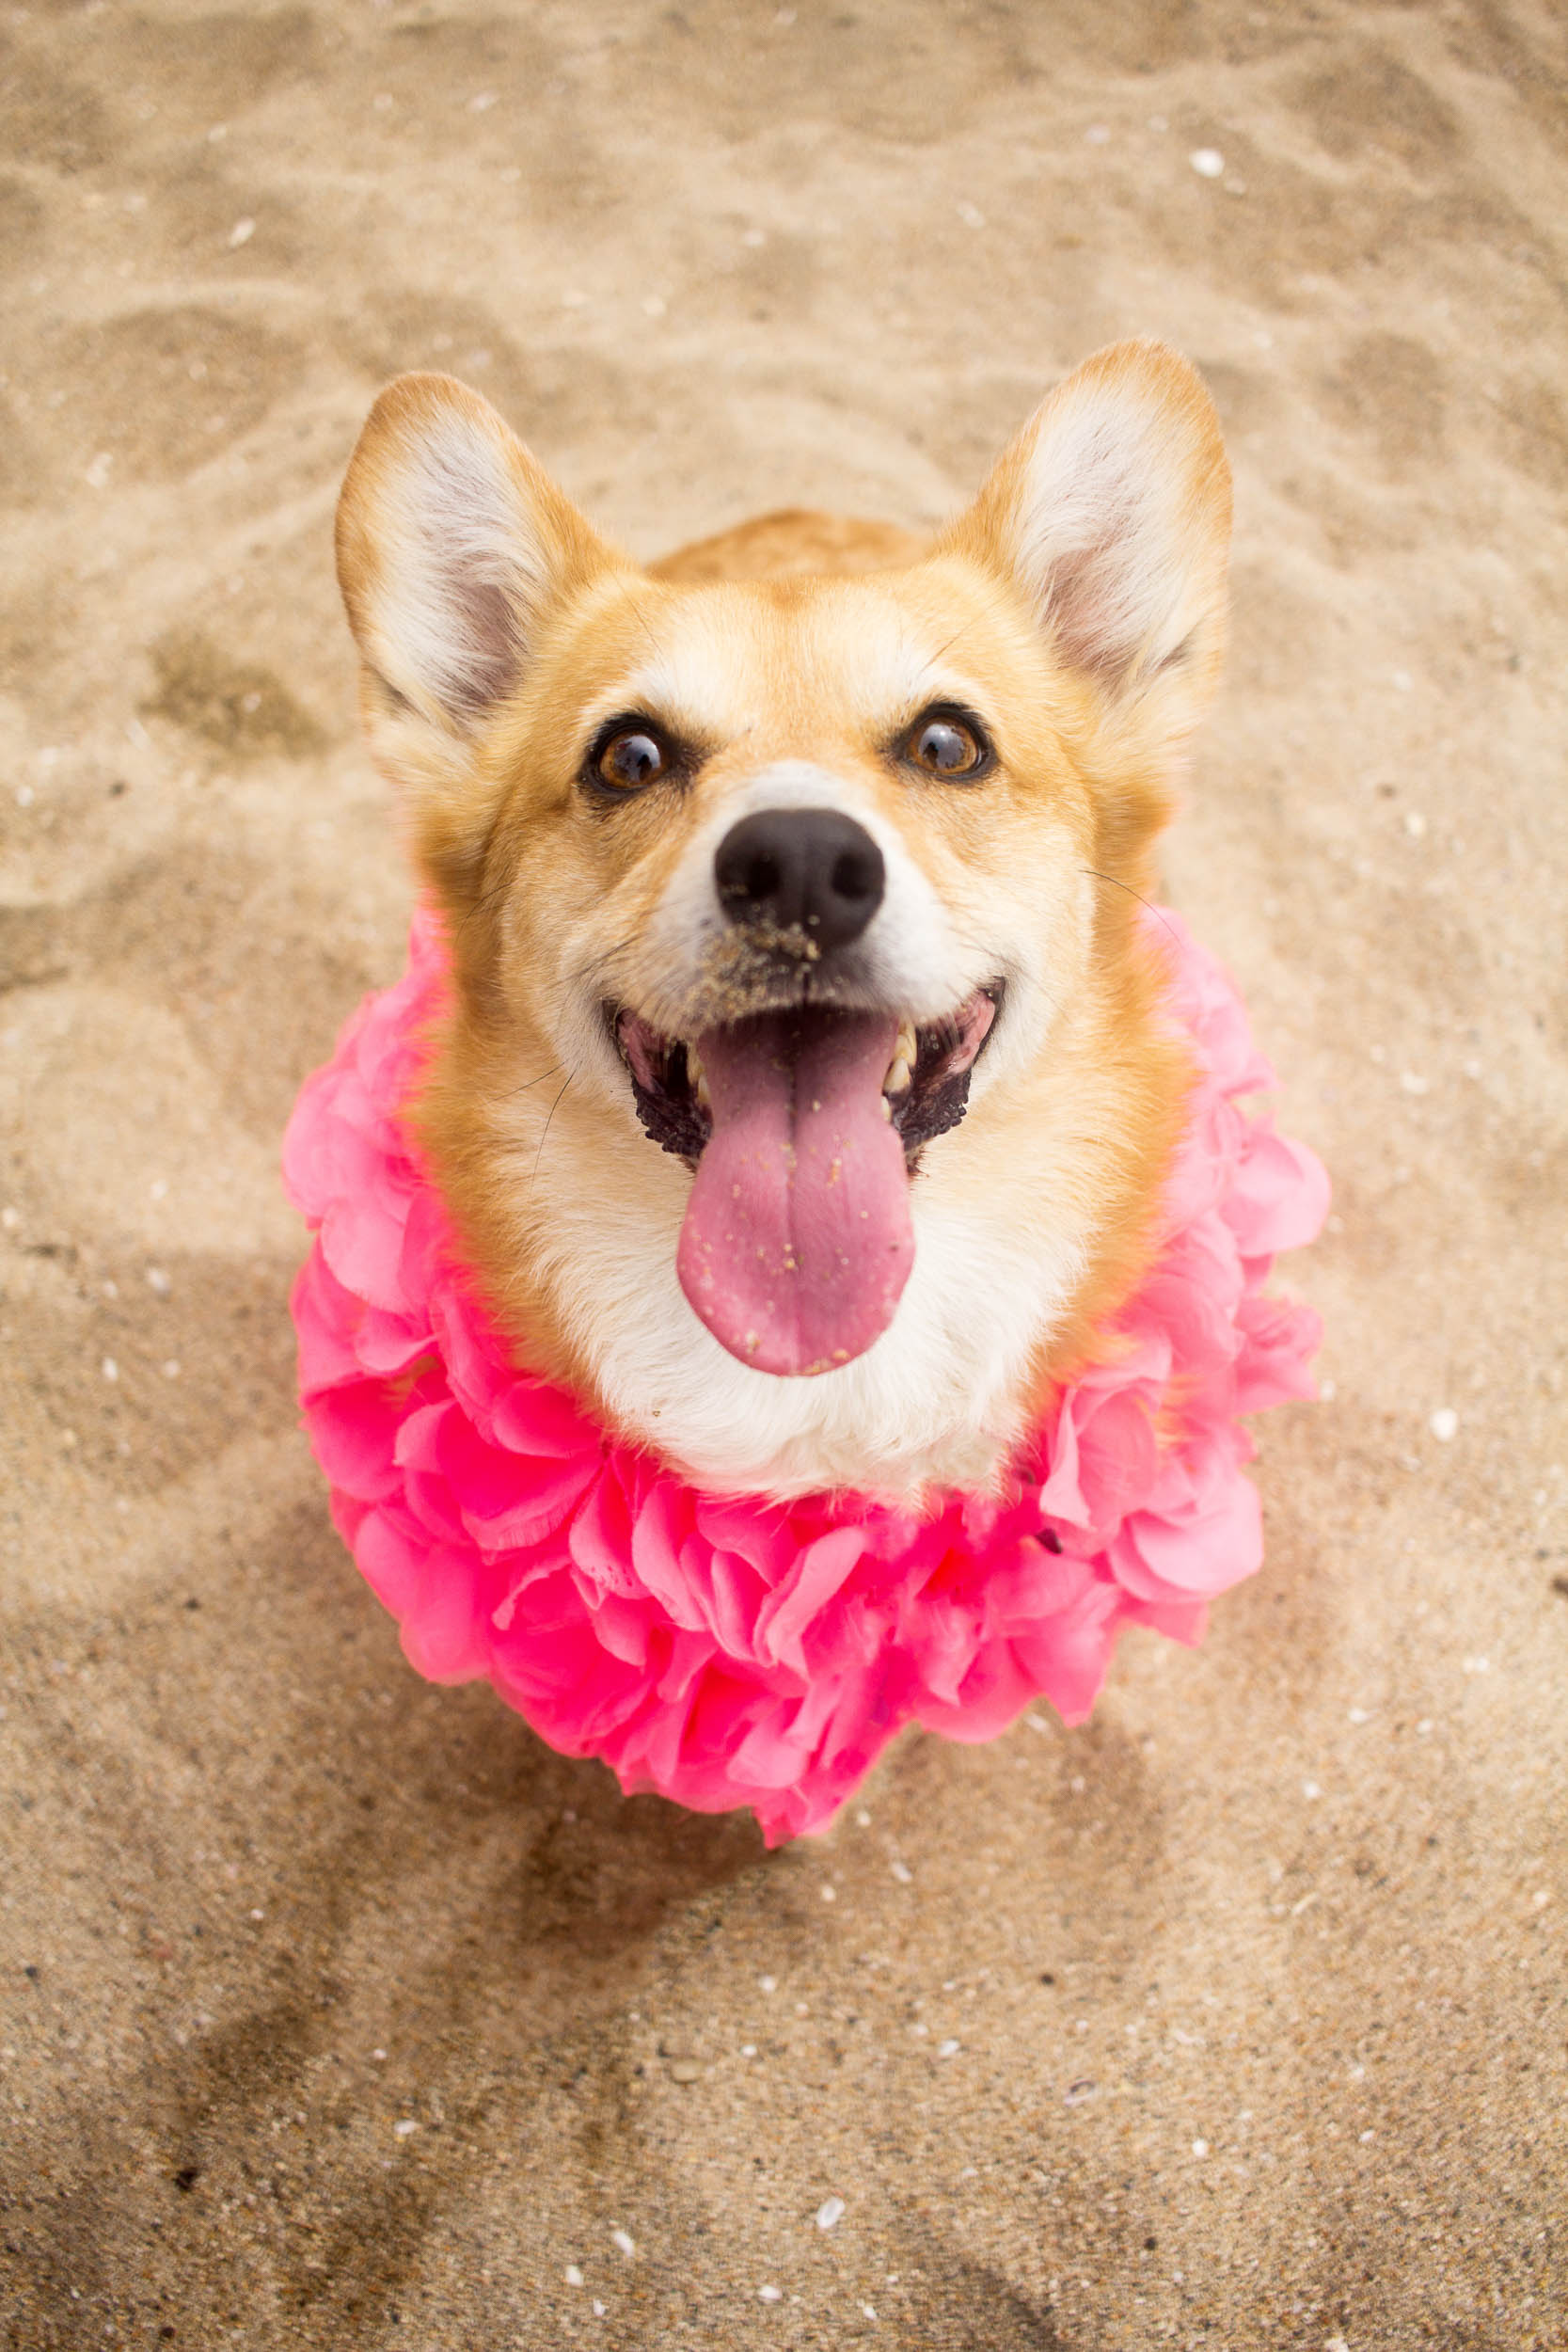 Orange-County-Dog-Photography-Pet-Huntington-Dog-Beach-SoCal-Corgi-Beach-Day_Steamer-Lee_030.JPG